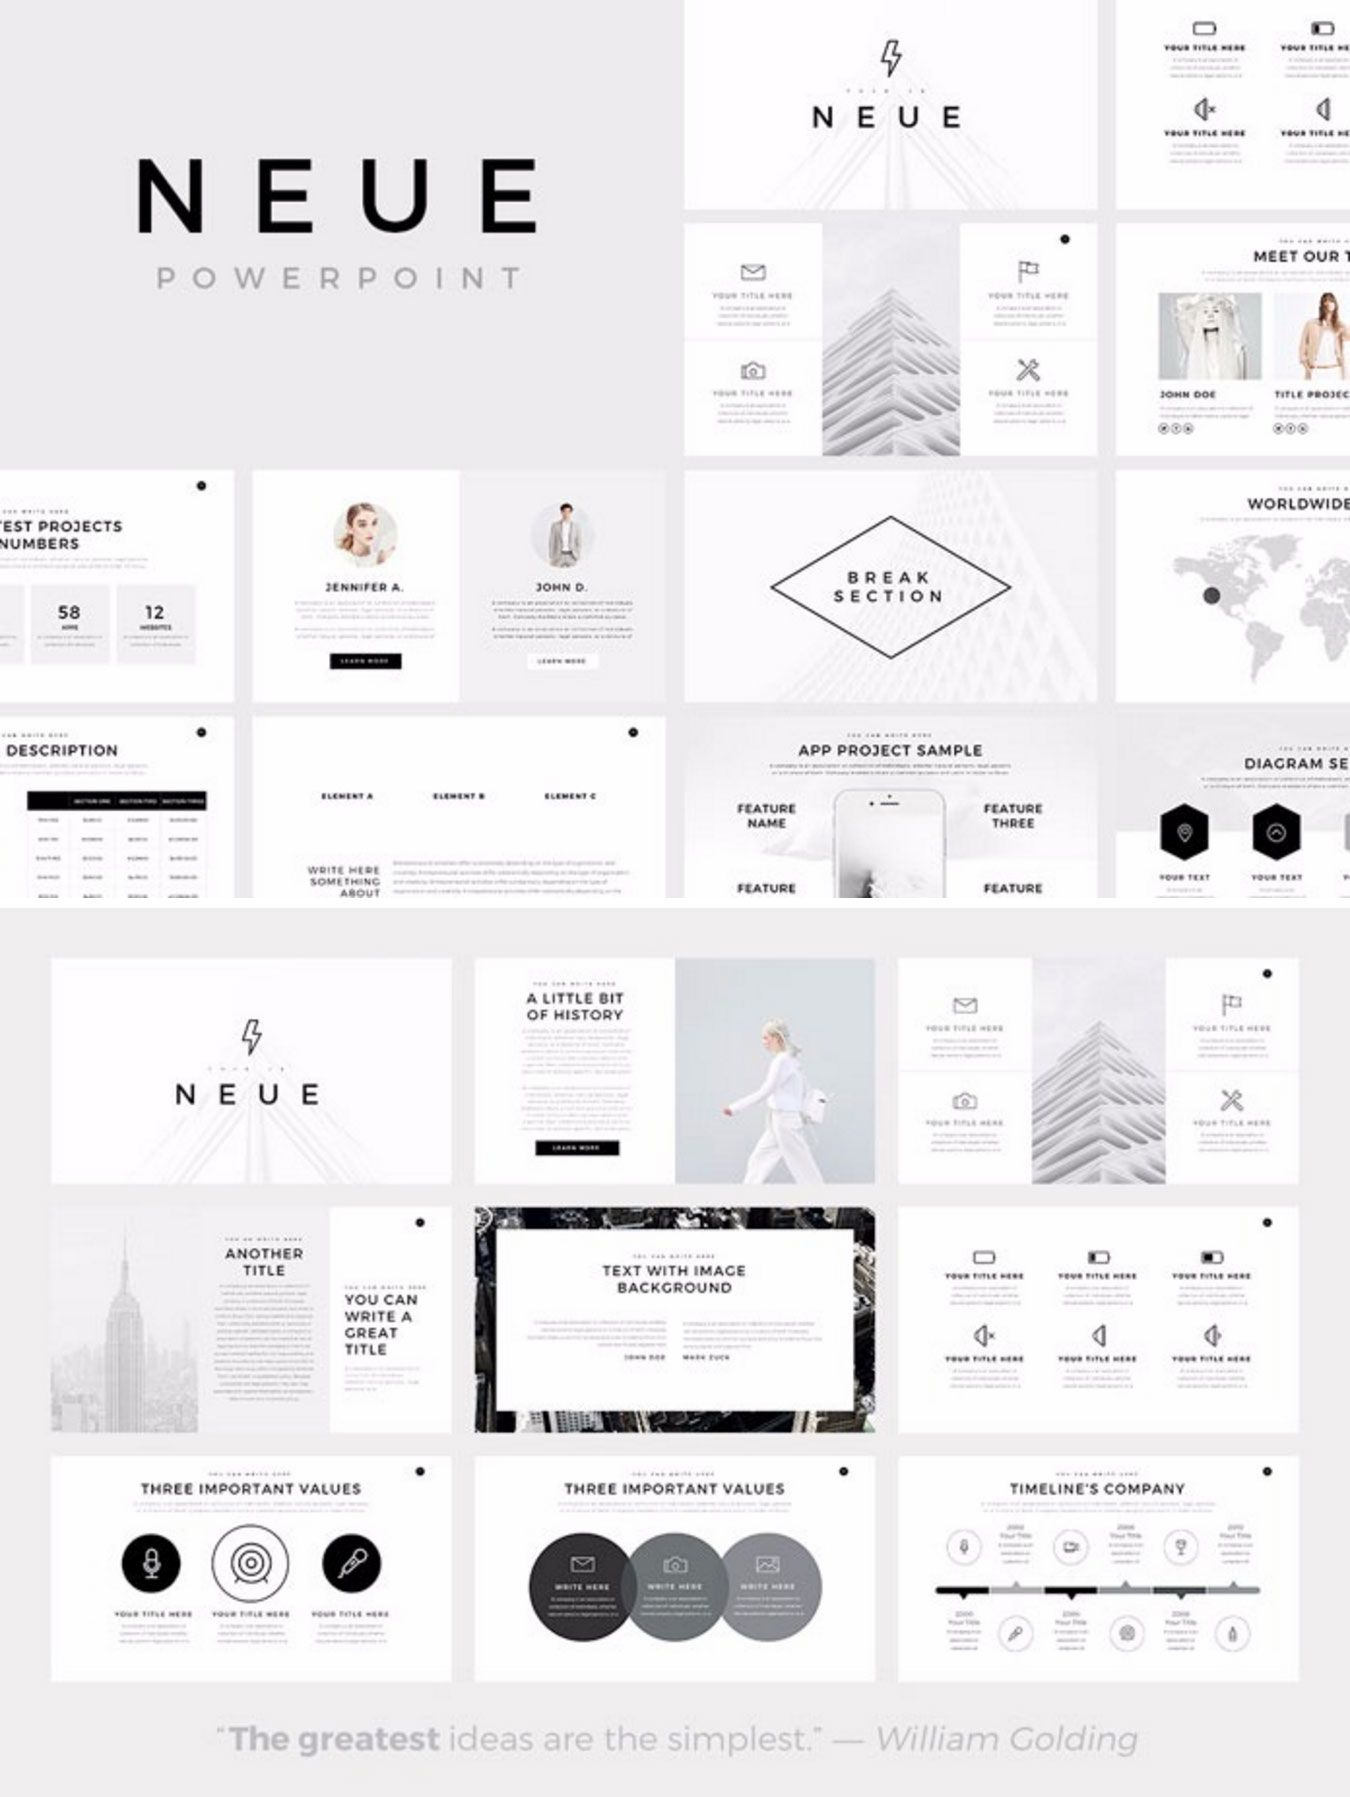 Neue minimalist powerpoint template keynotes pinterest neue minimalist powerpoint template toneelgroepblik Image collections